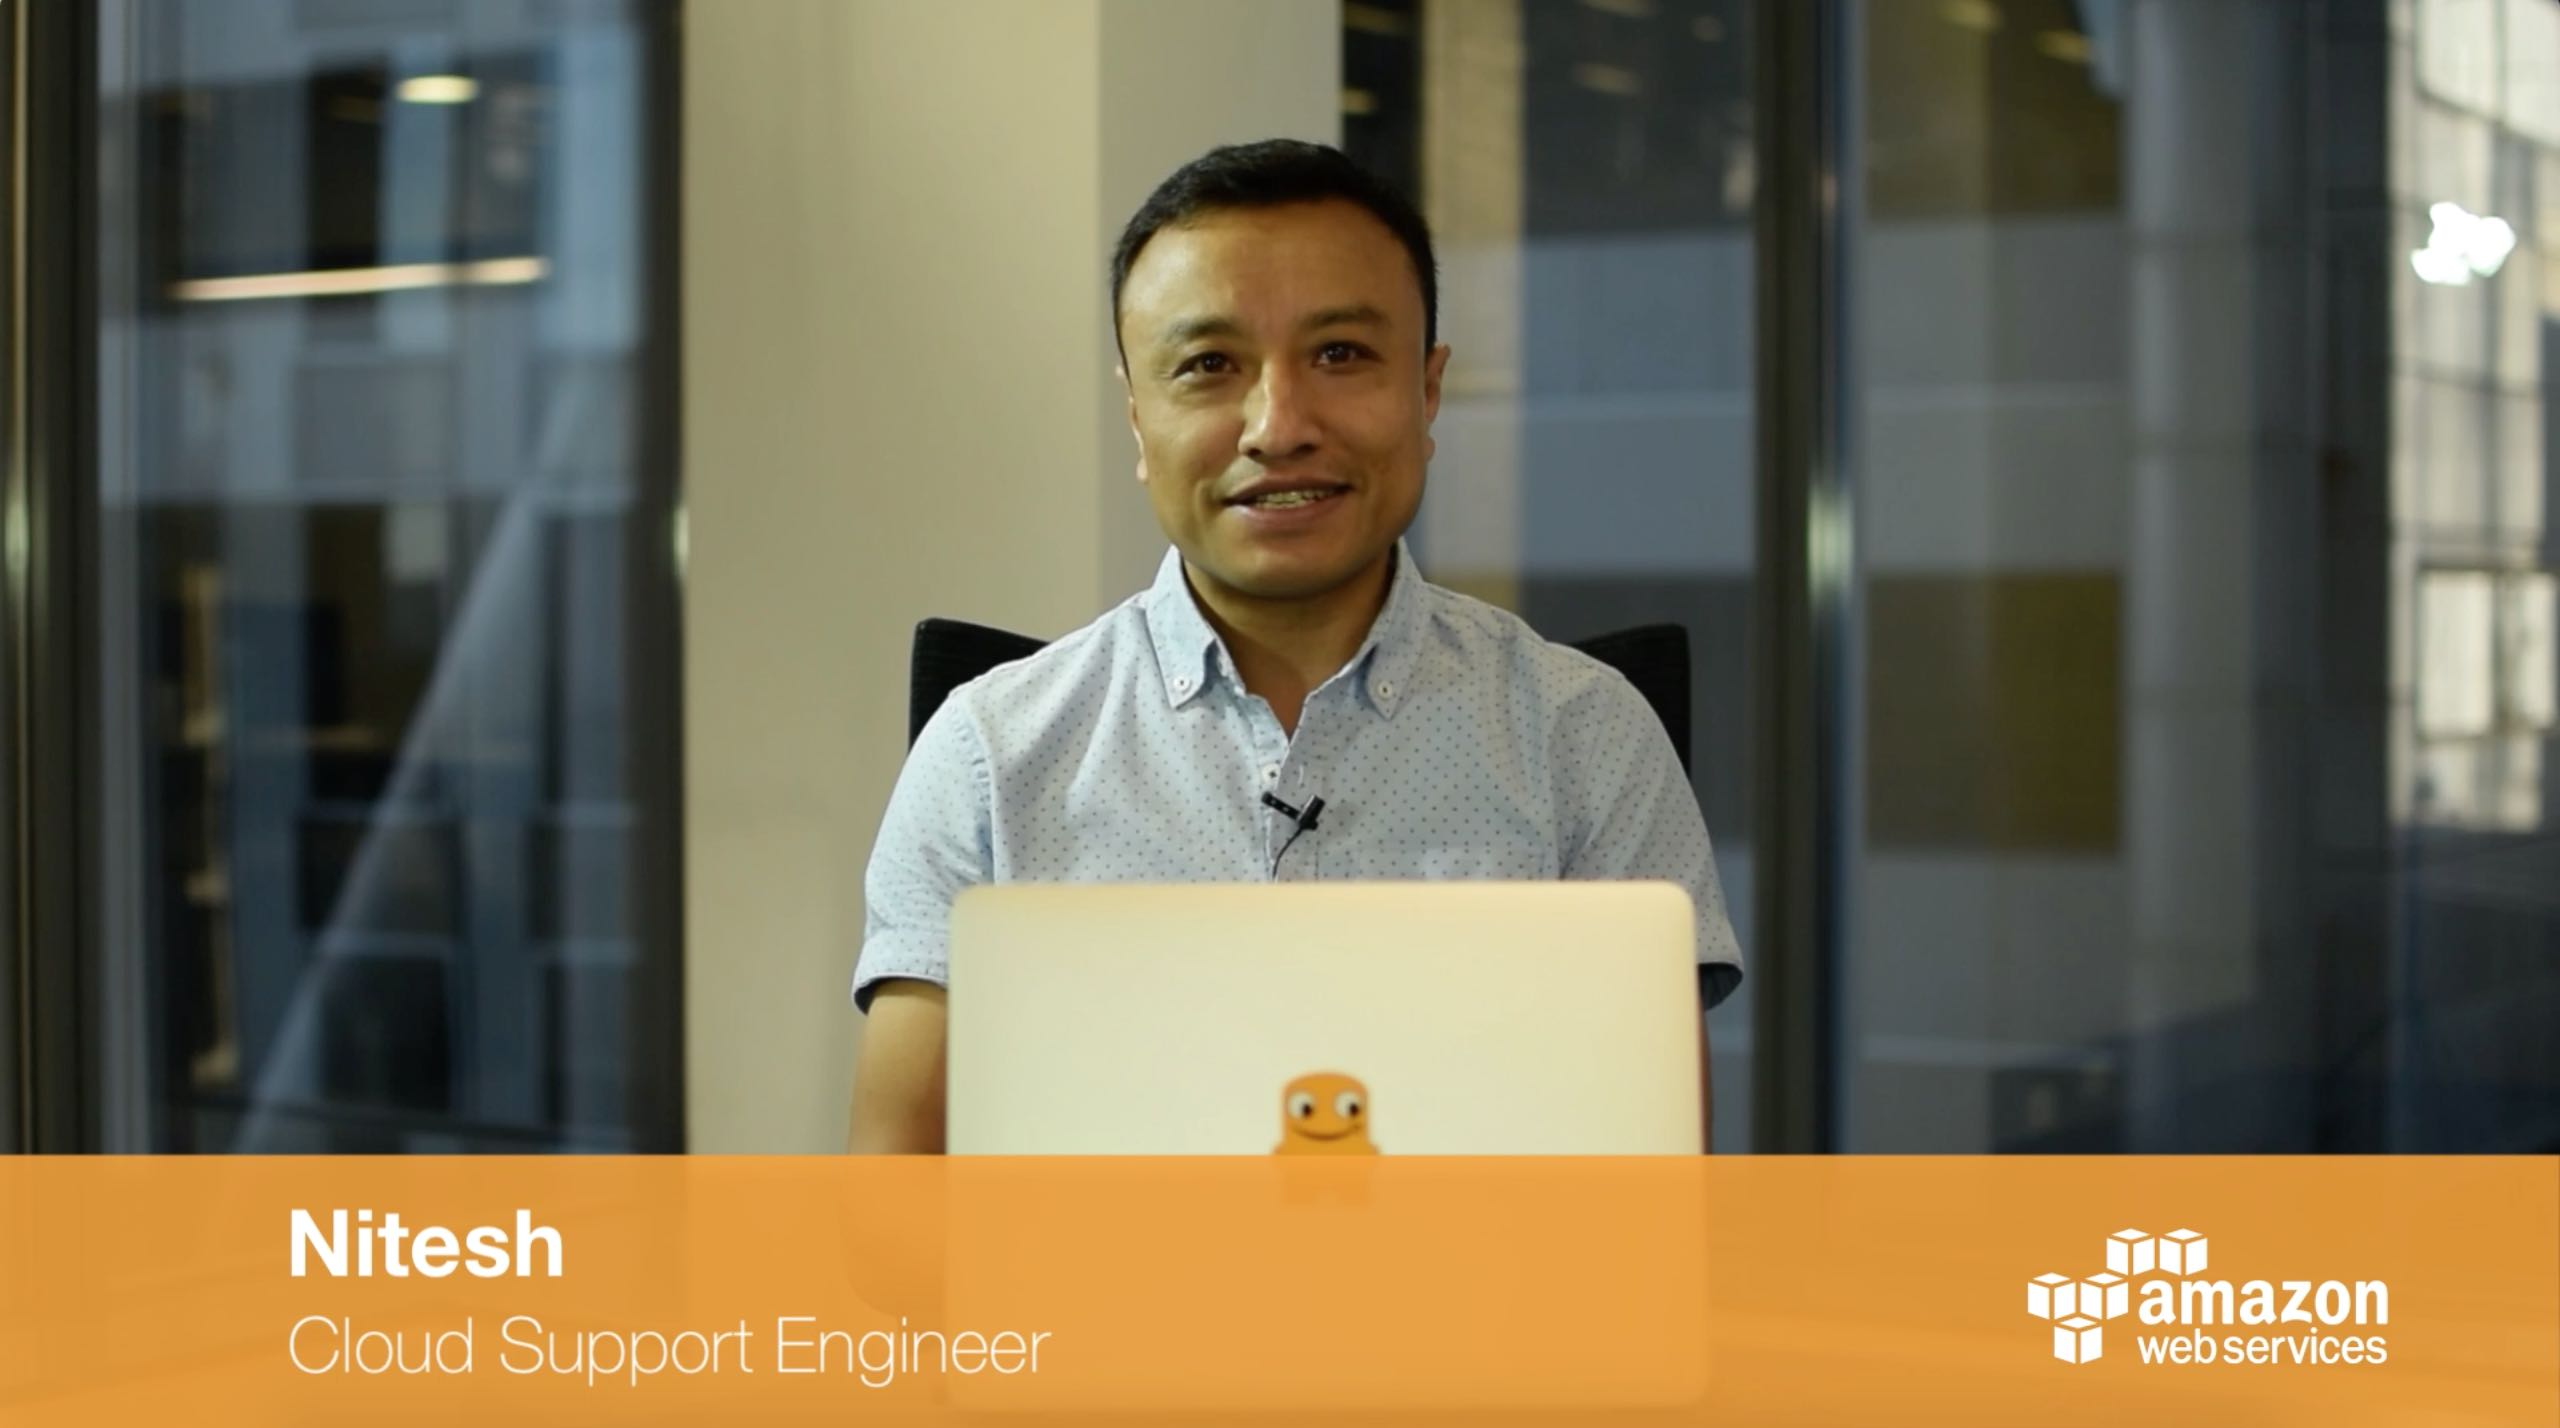 Watch Nitesh's video to learn more